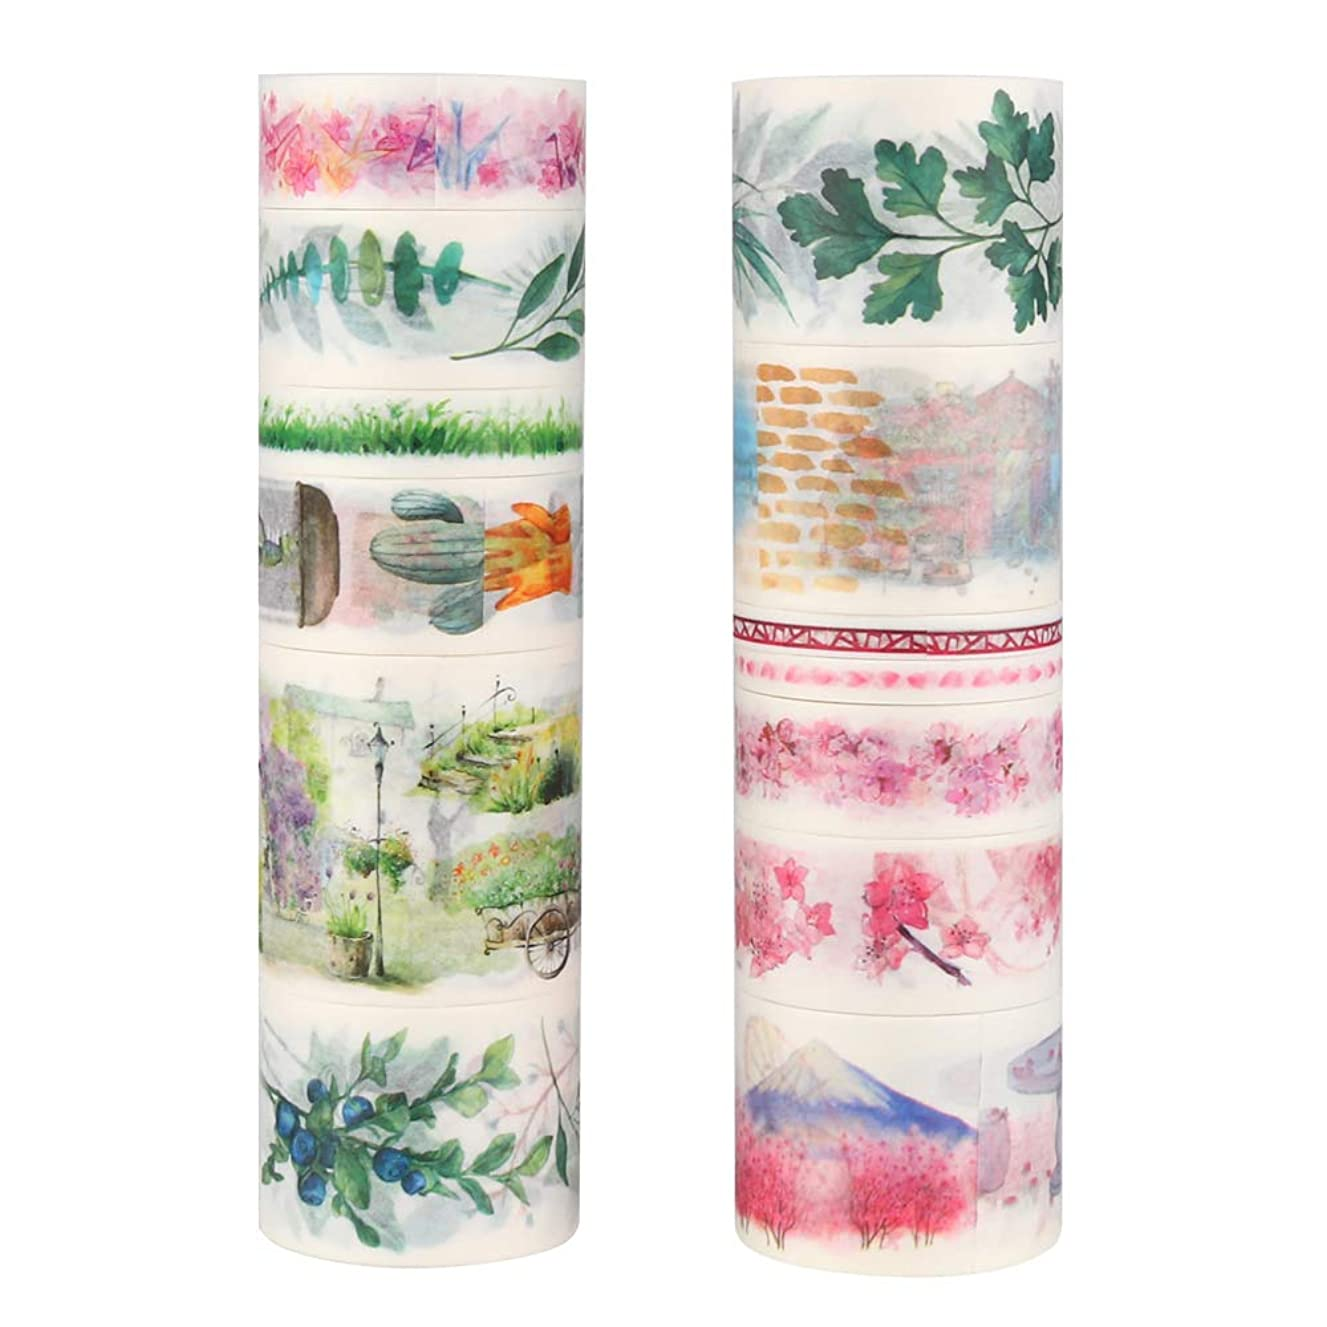 Molshine 13rolls(6.6ft/Roll) Washi Masking Tape Set,Adhesive Paper,Crafts Tape for DIY,Planners,Scrapbook,Object Beautification Decorative,Collection,Gift Wrapping-Cherry Blossom Green Plant Series